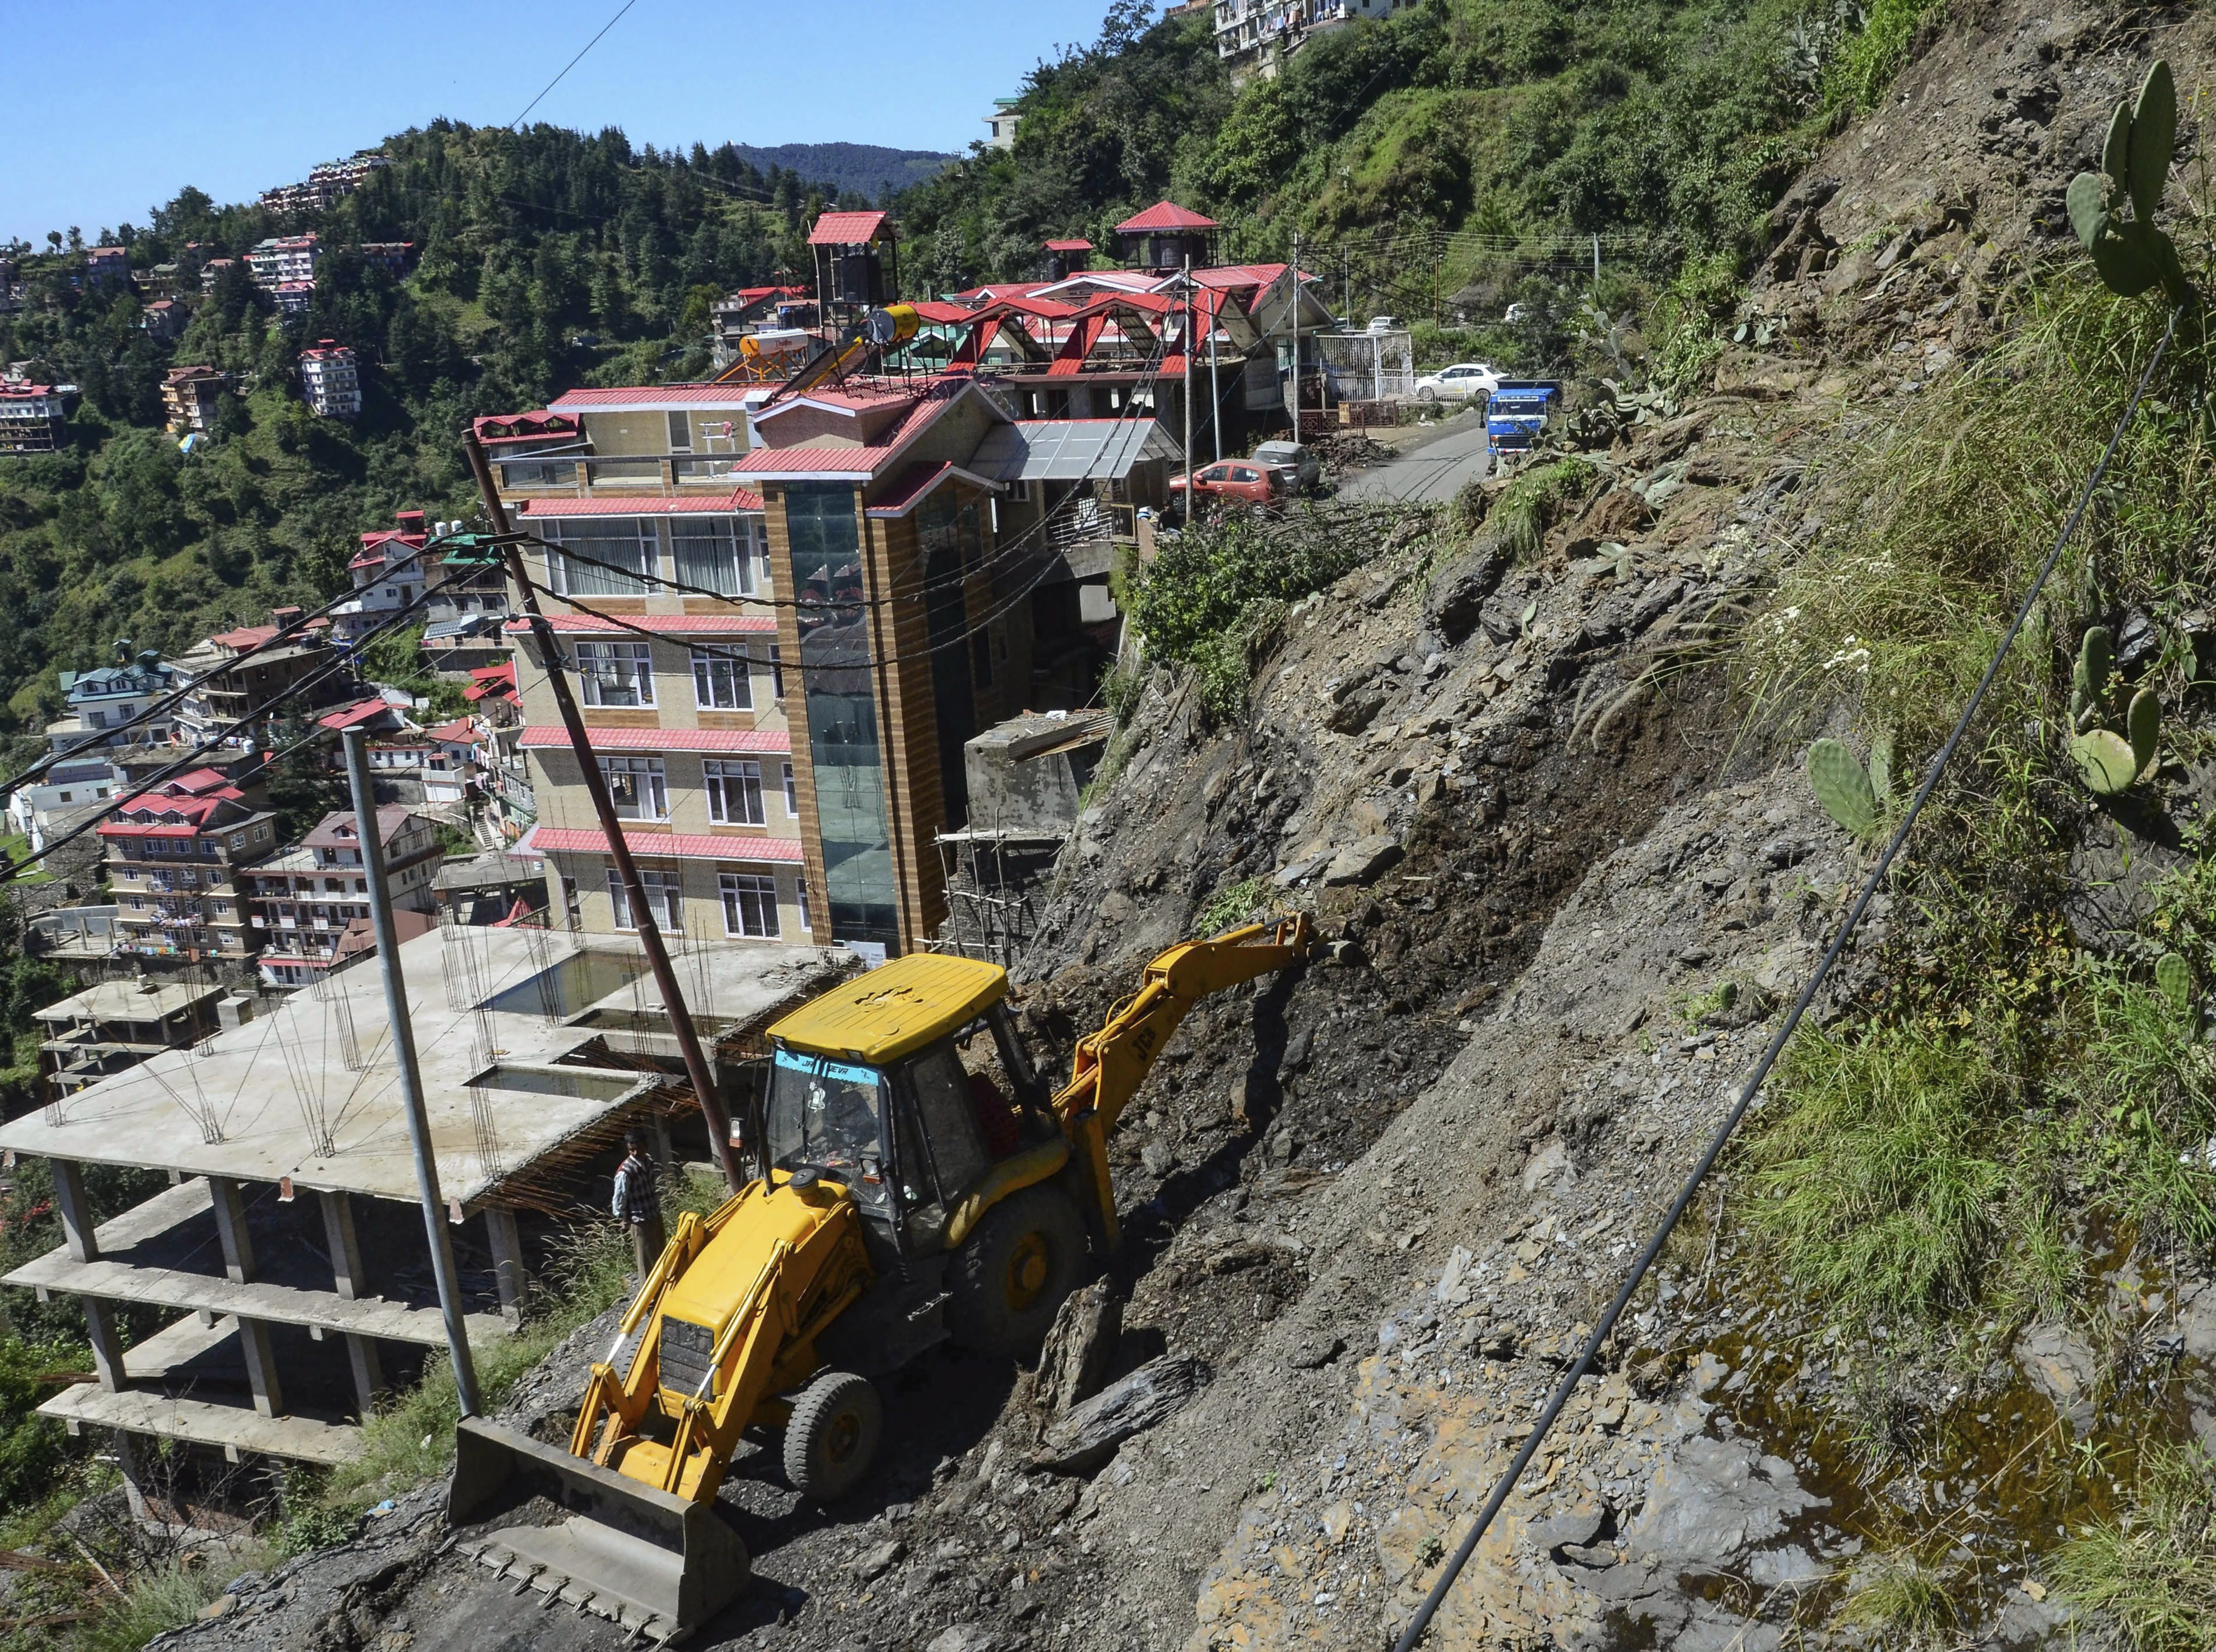 An earthmover clears debris from a road after a landslide triggered by incessant rains, in Shimla - PTI